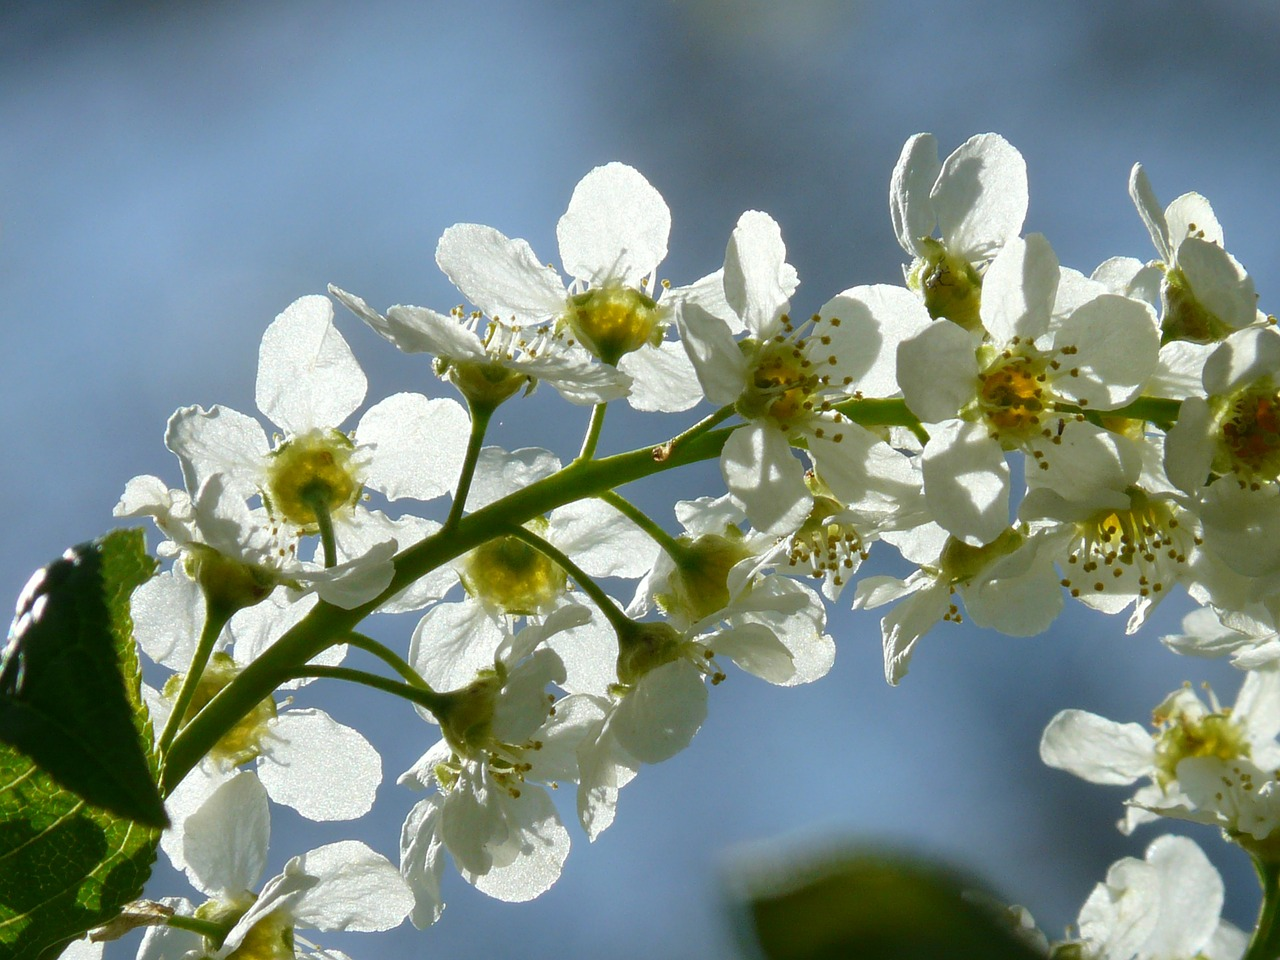 common bird cherry flowers prunus padus free photo